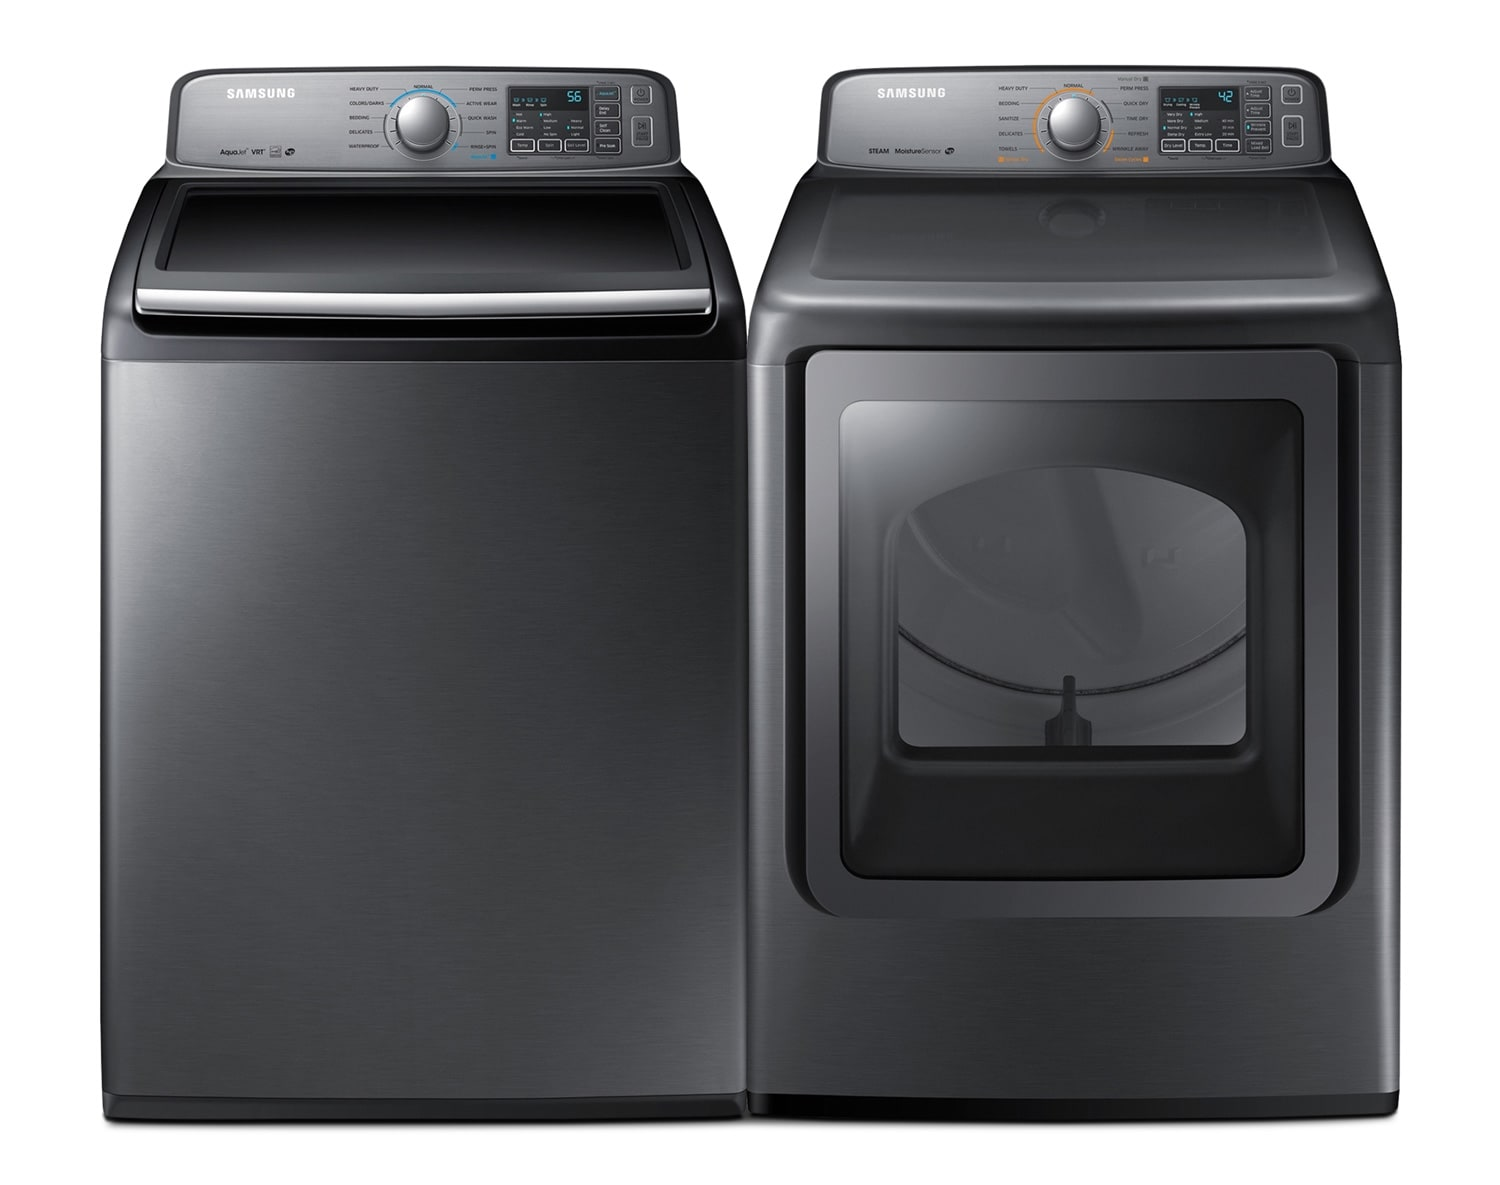 Samsung Stainless Platinum Top-Load Laundry Pair